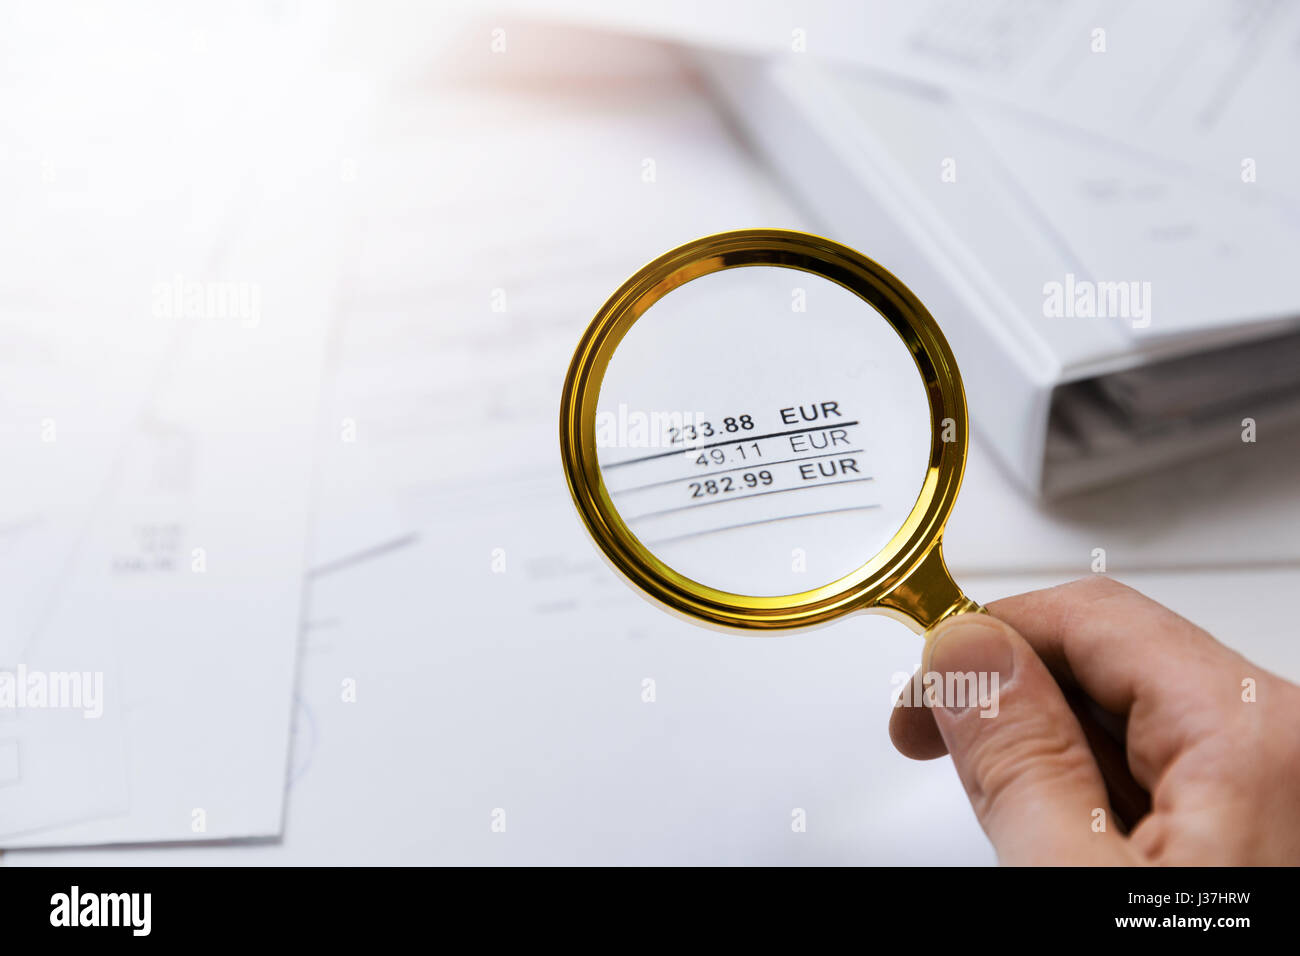 audit concept - auditor checking bills with magnifying glass - Stock Image